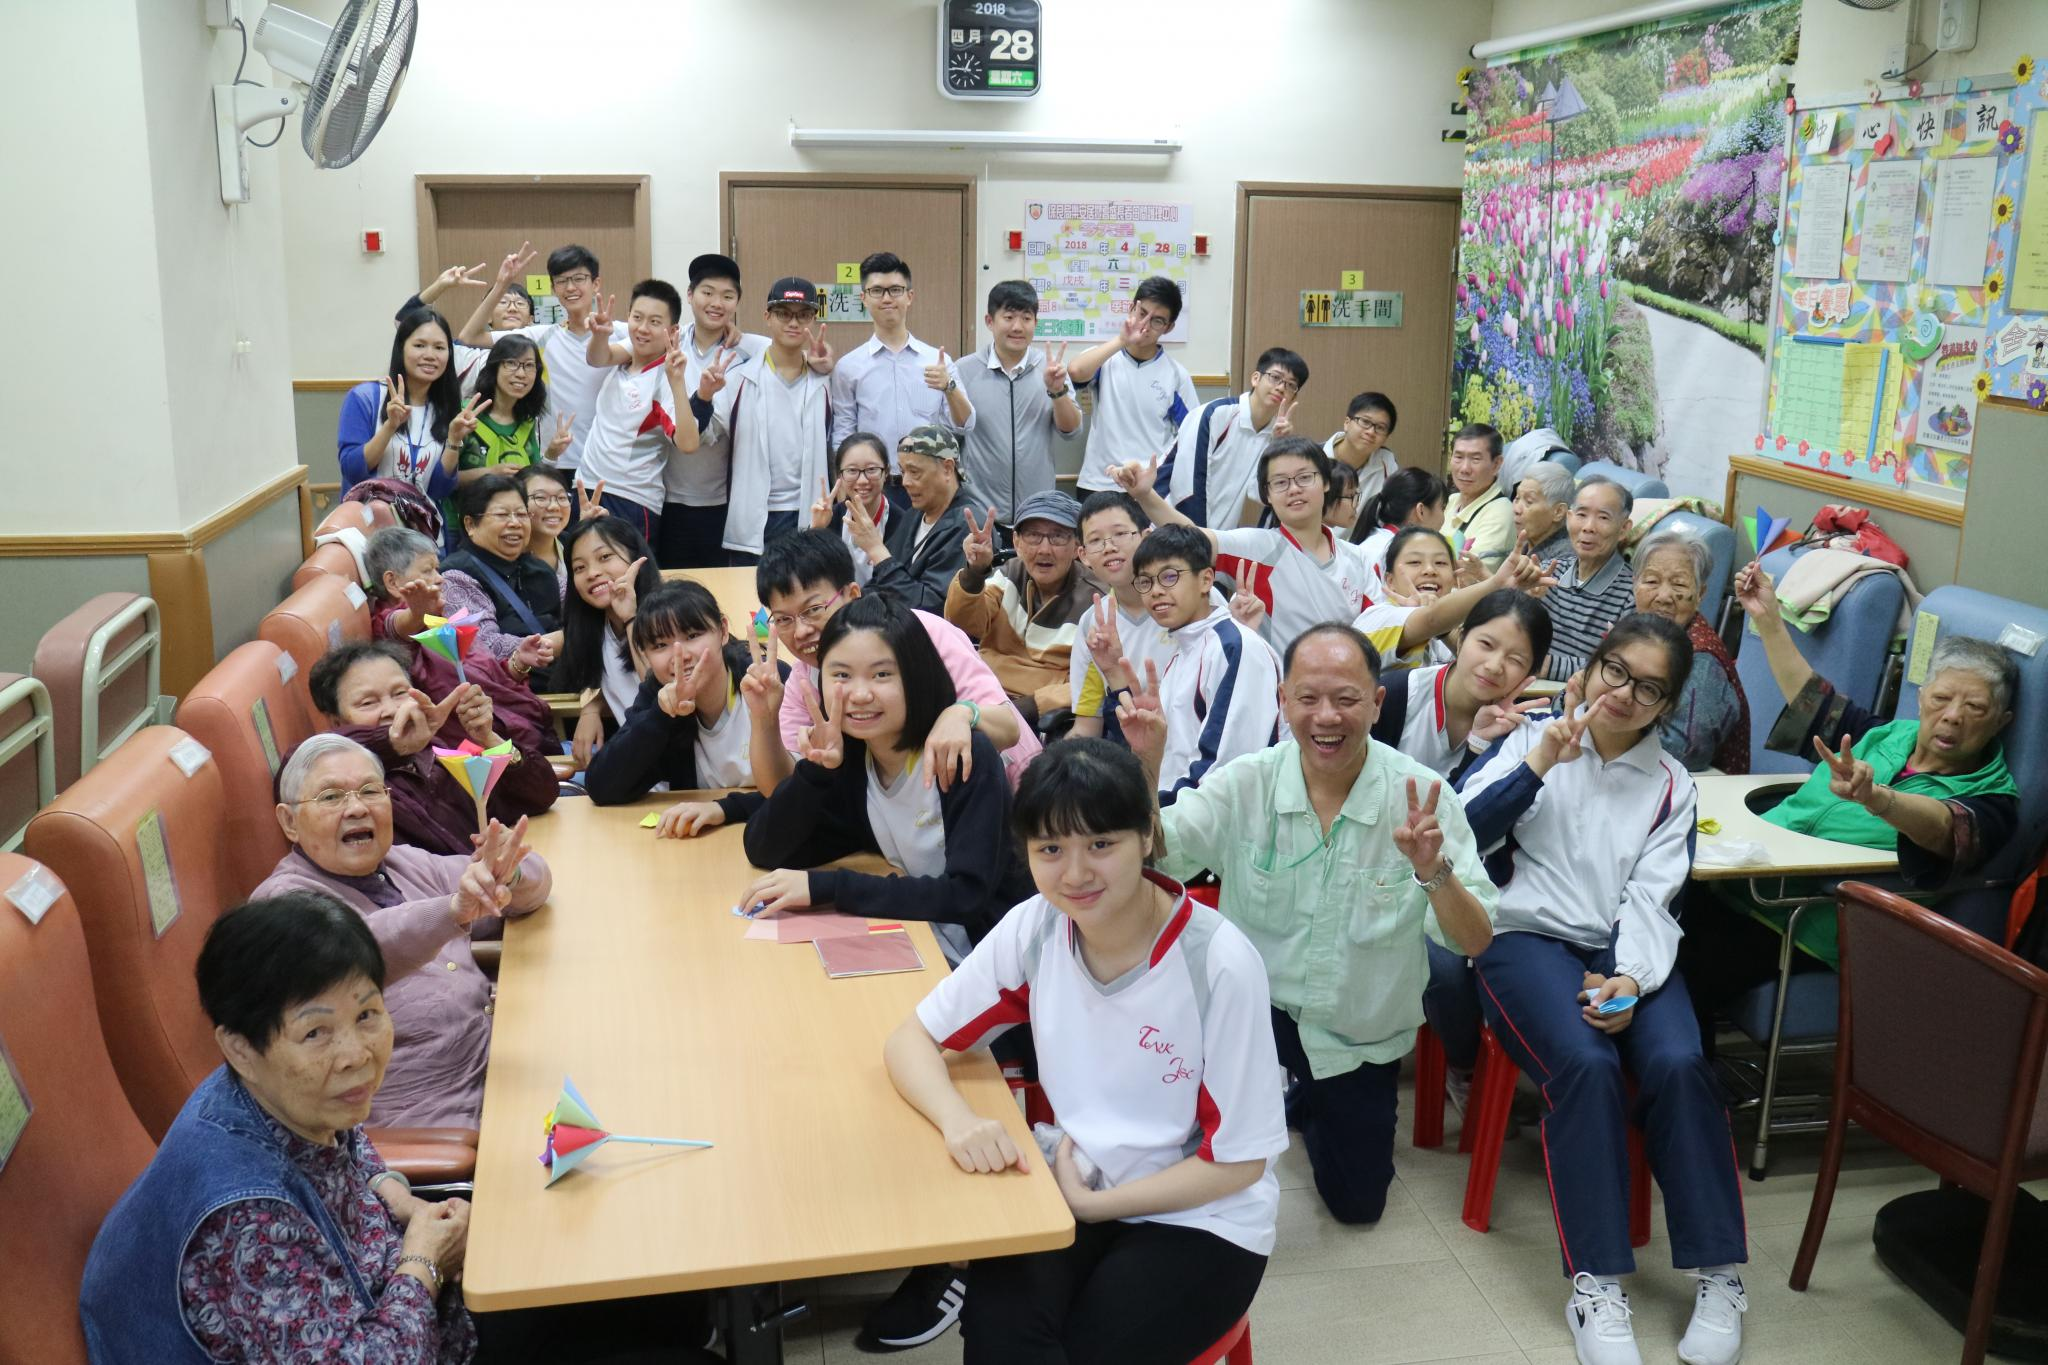 Our students brought happiness to the elderly.